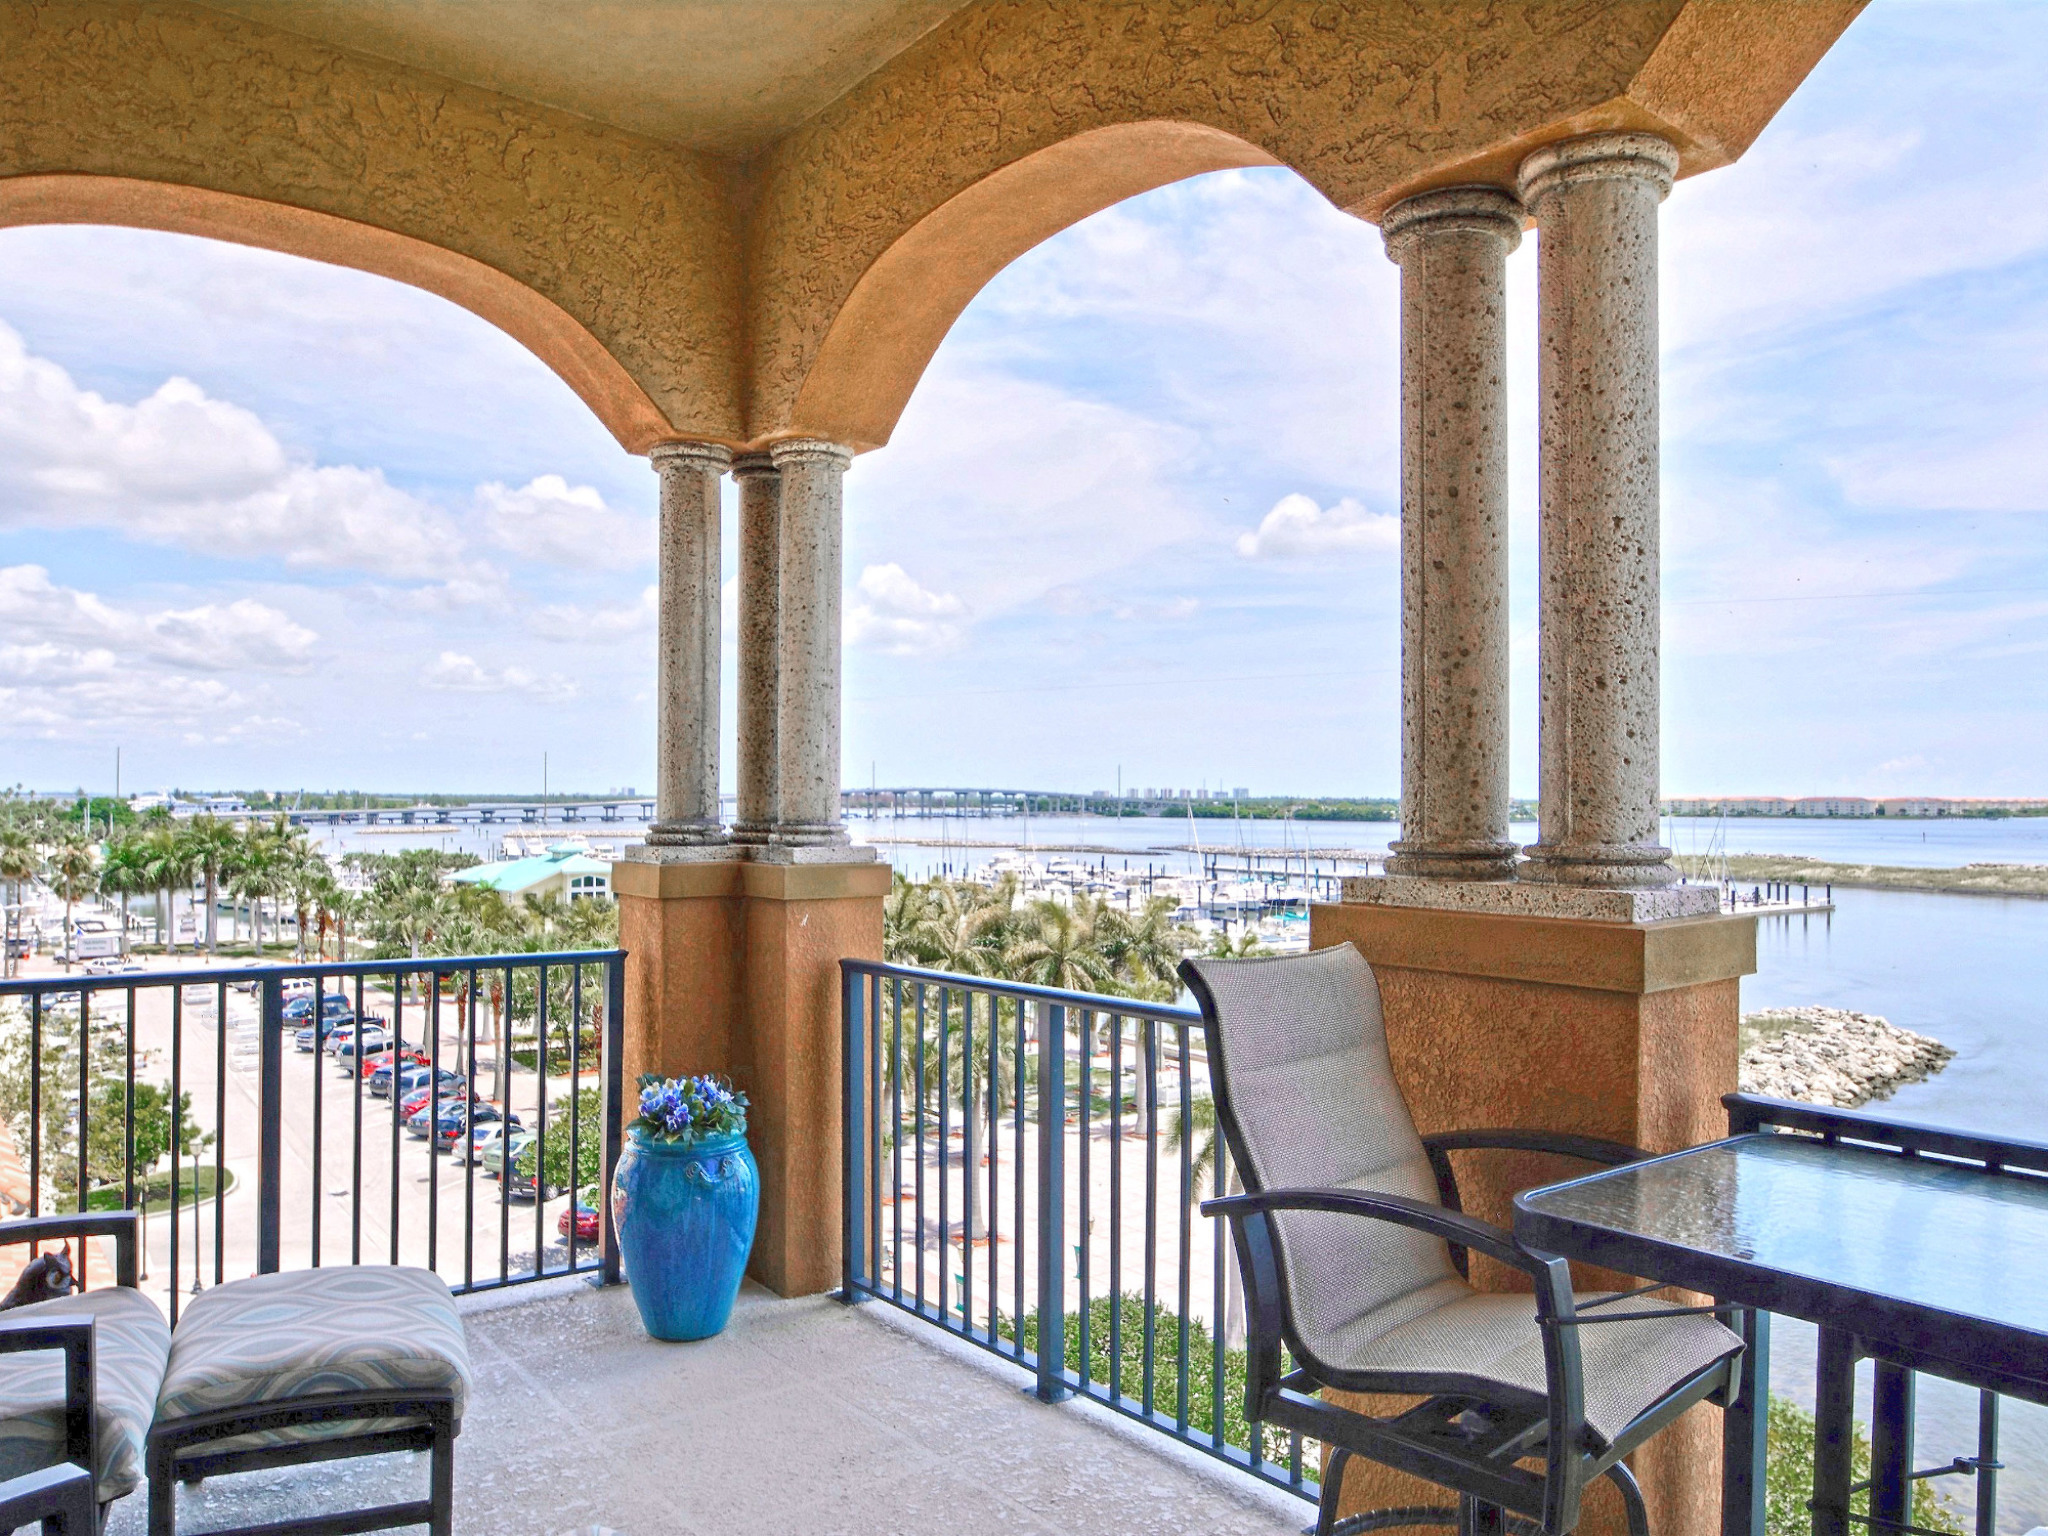 Condominium for Sale at Renaissance on the River Masterpiece 20 Orange Avenue PH-5 Fort Pierce, Florida, 34950 United States